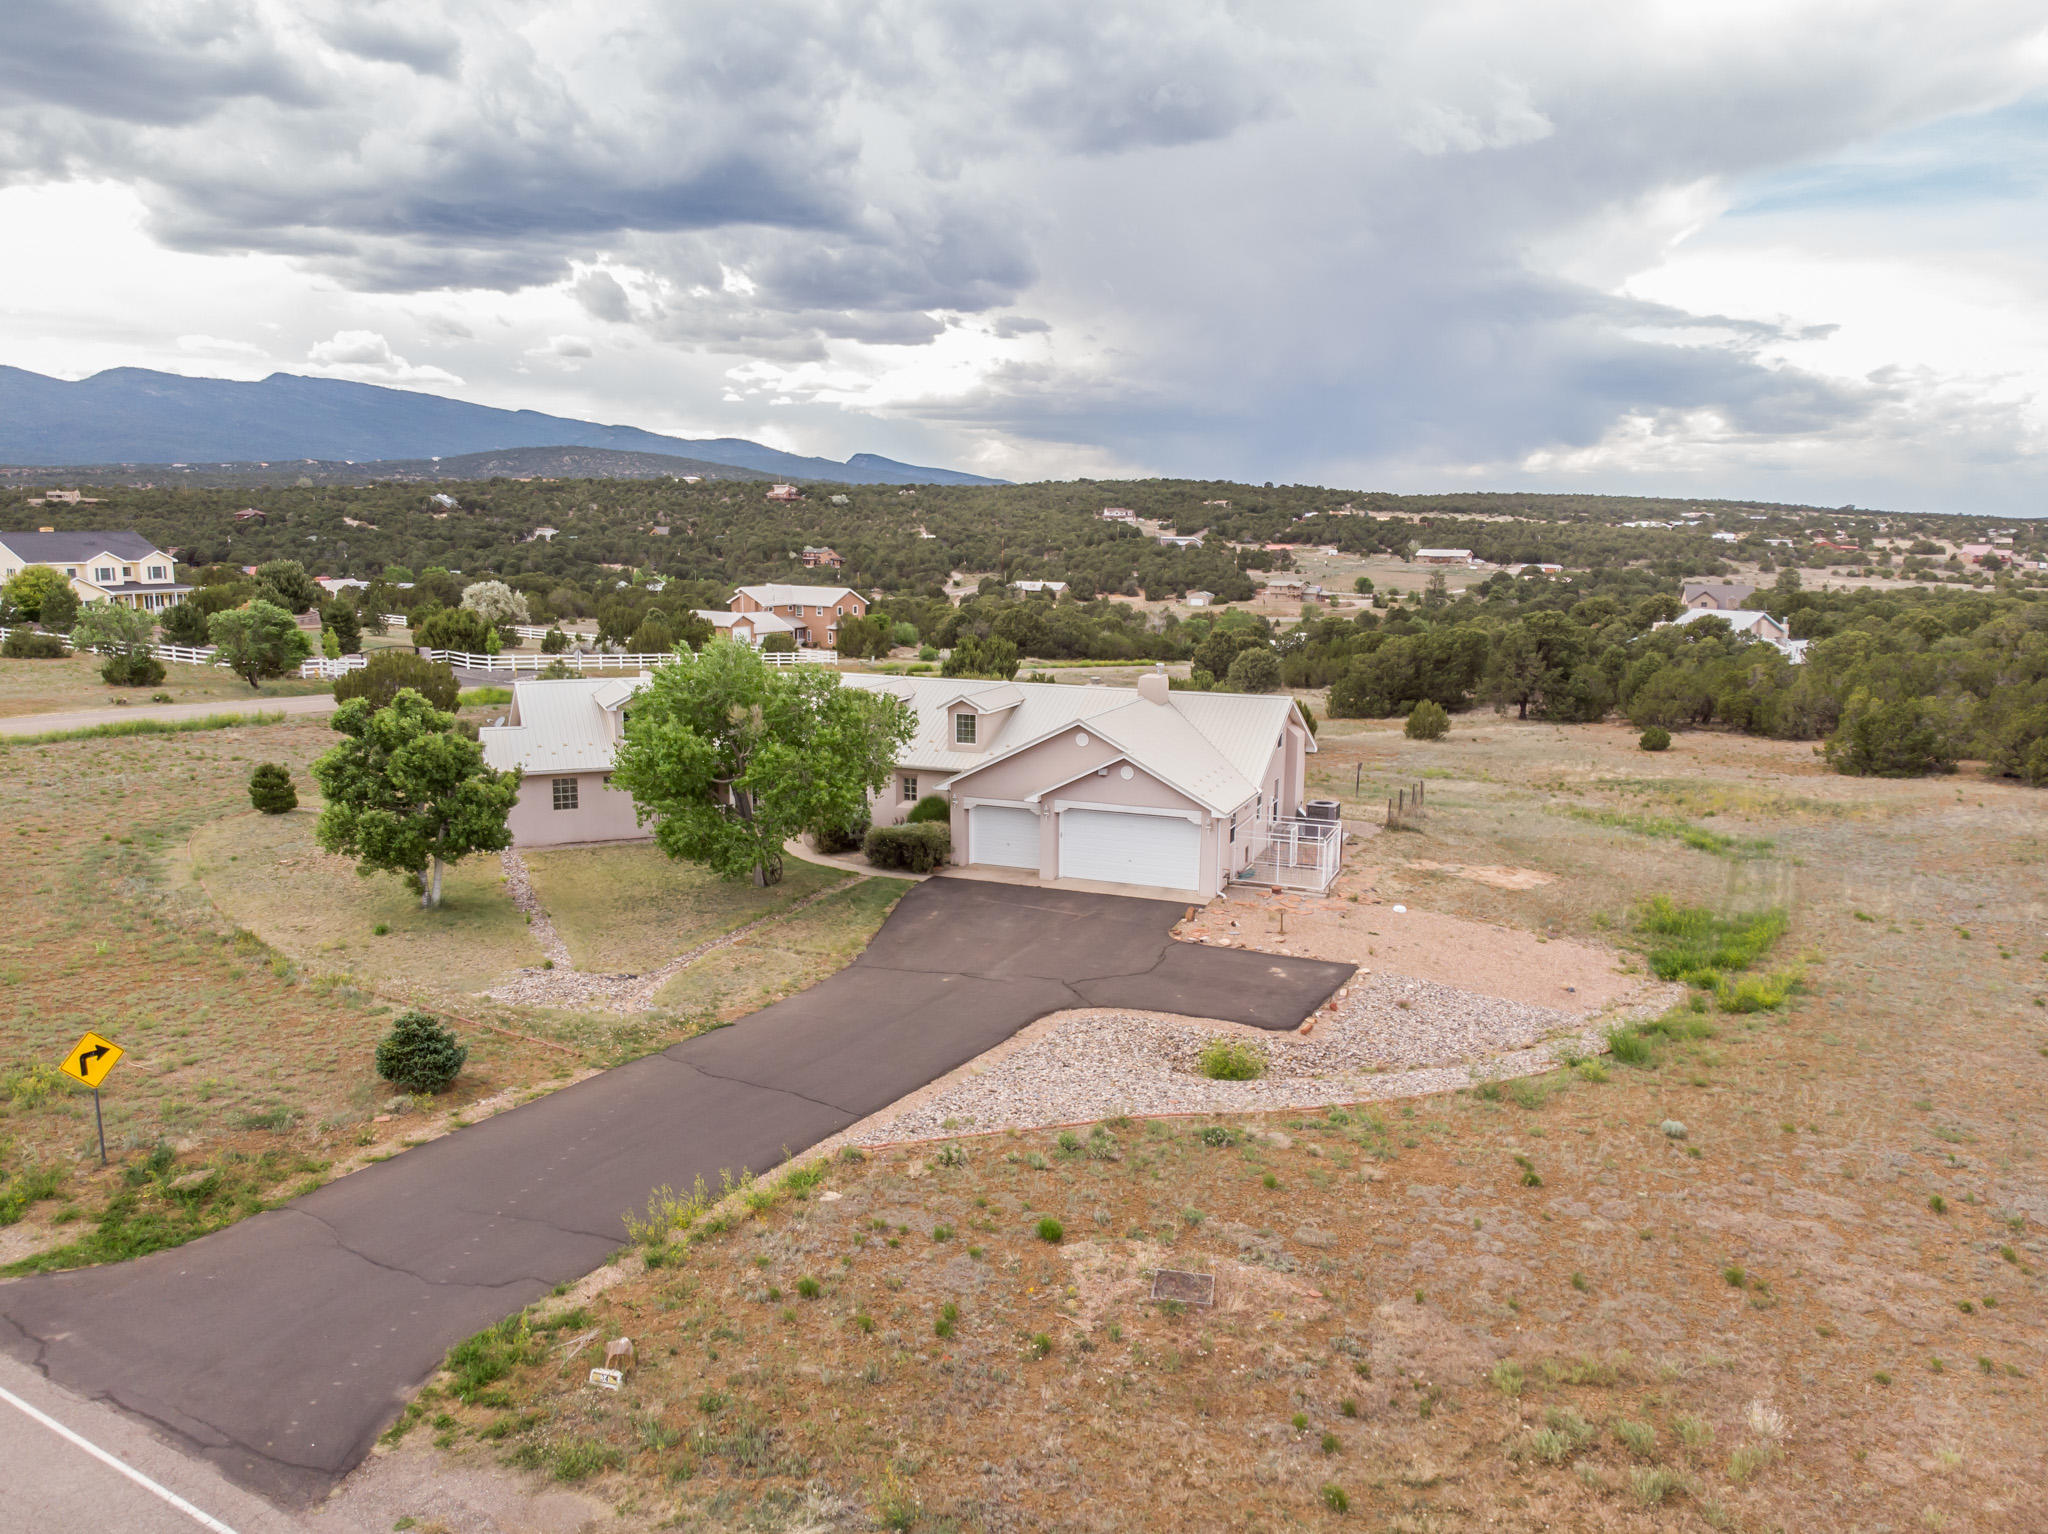 Absolutely delightful Northern New Mexico style home on 3 acres in the desirable Richland Estates neighborhood.  Soaring ceilings flood this home with beautiful light.  Flowing open floorplan that leads out to a grassy private covered patio with sweeping views of the Sandia Mountains.  Large kitchen with custom Halbert cabinets and island open to the dining room with tasteful posts and corbel accents.  Split floorplan and spacious master suite with kiva fireplace, jetted tub and large WIC and shower.  3 bedrooms, plus an office with glass french doors and kiva fireplace.  Large picture windows, tasteful tile plus custom tilework in the bathrooms and newer carpet. Metal roof, community water, No HOA and 3 car garage.  Don't miss this home, it's a beauty!  *Virtual Tour in photos tab*